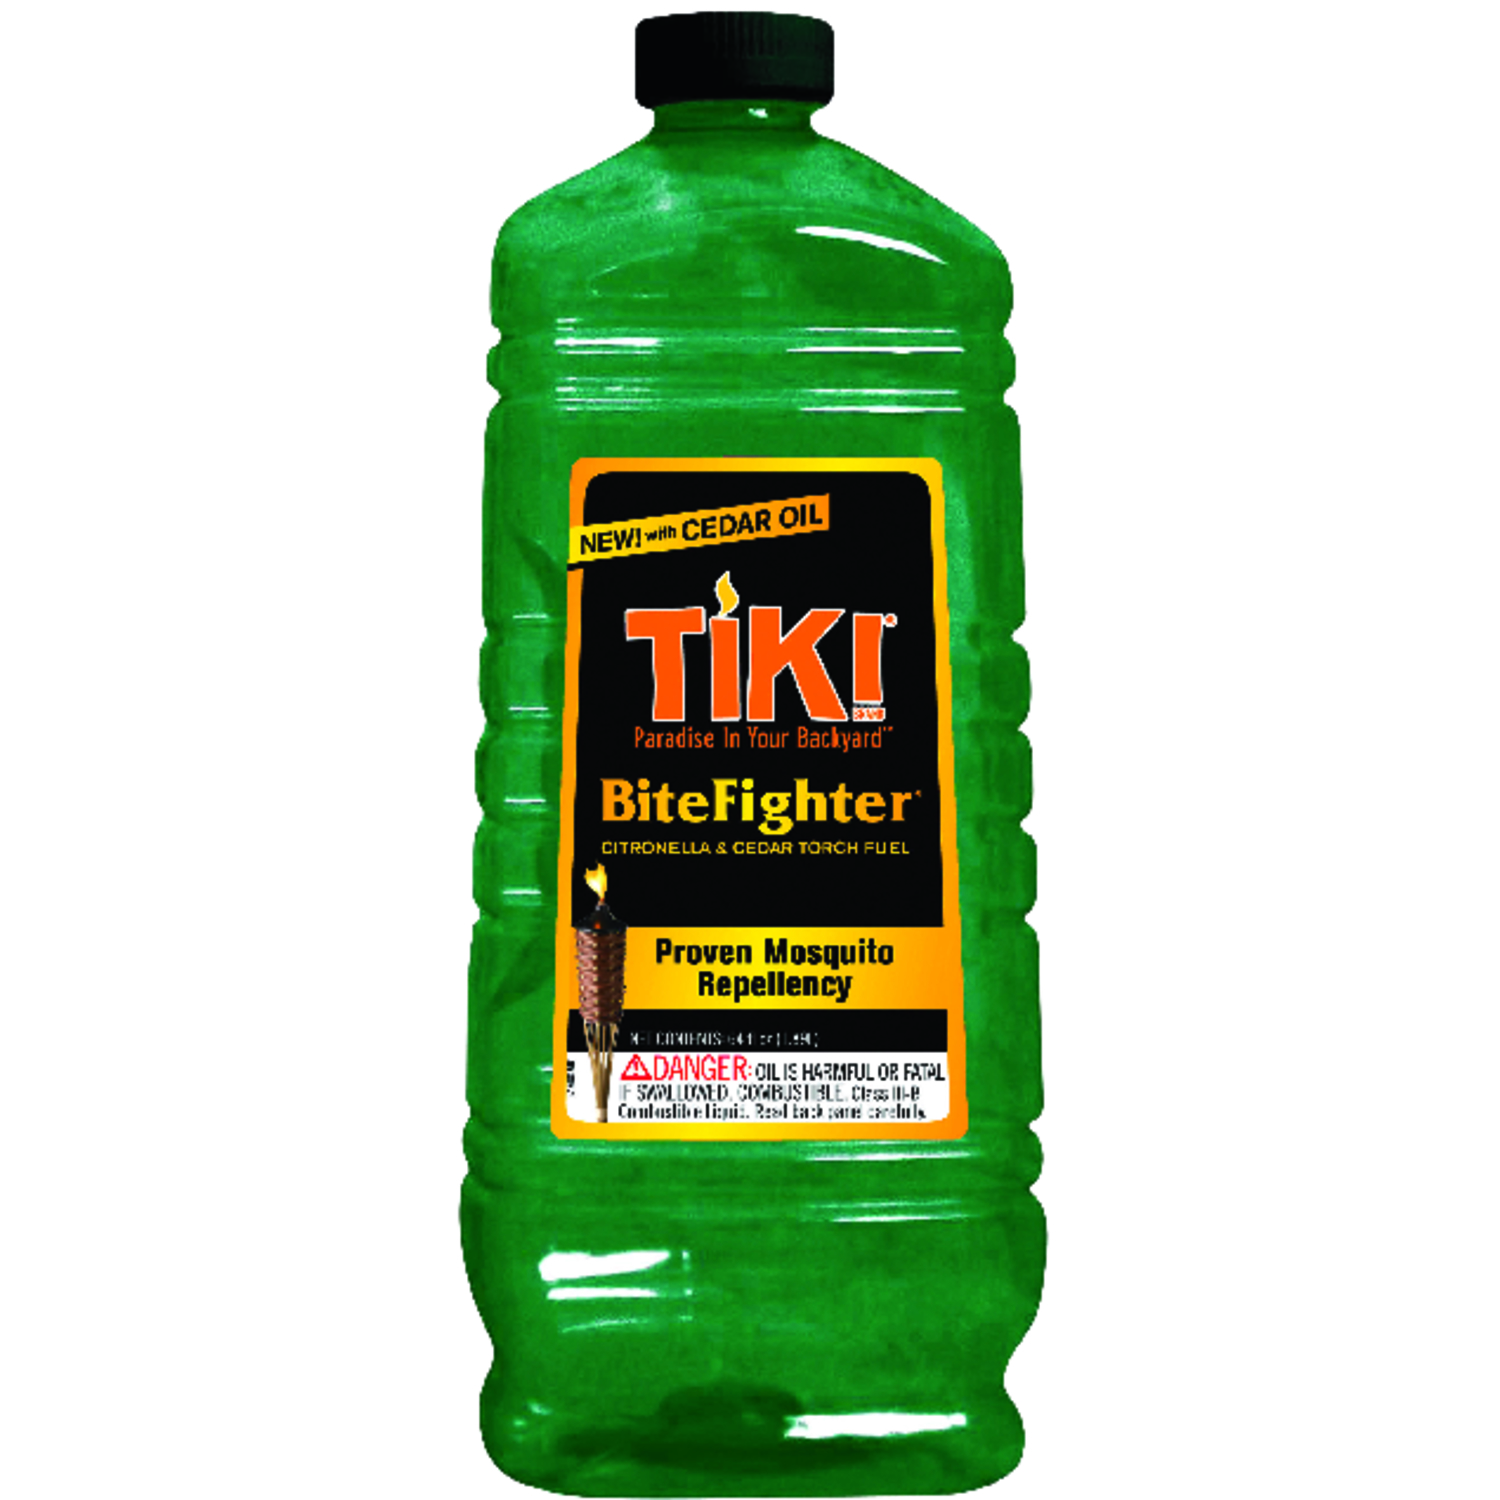 Tiki  Bug Fighter  Citronella & Cedar  Torch Fuel  Green  64 oz.